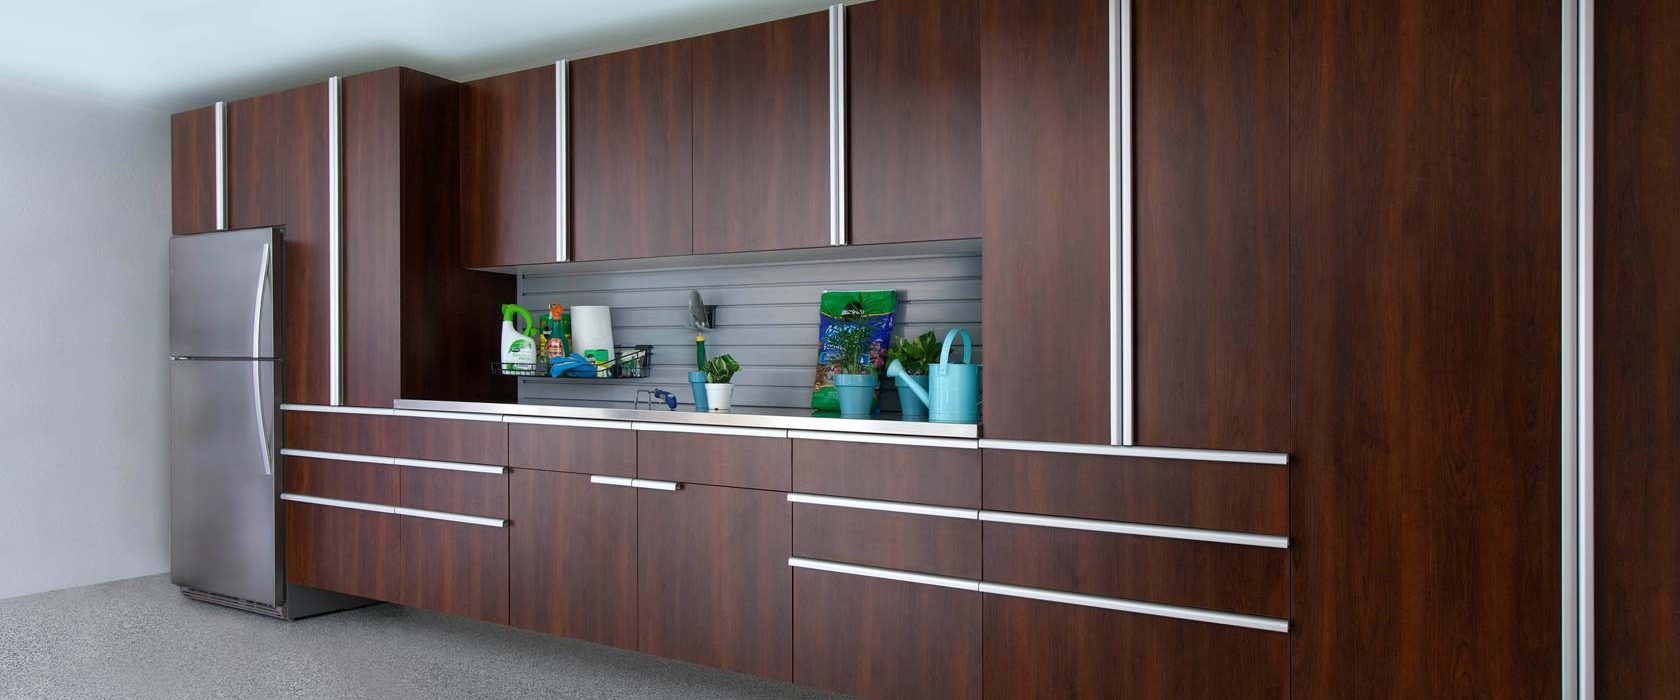 closet systems. Garage Storage Cabinets Closet Systems